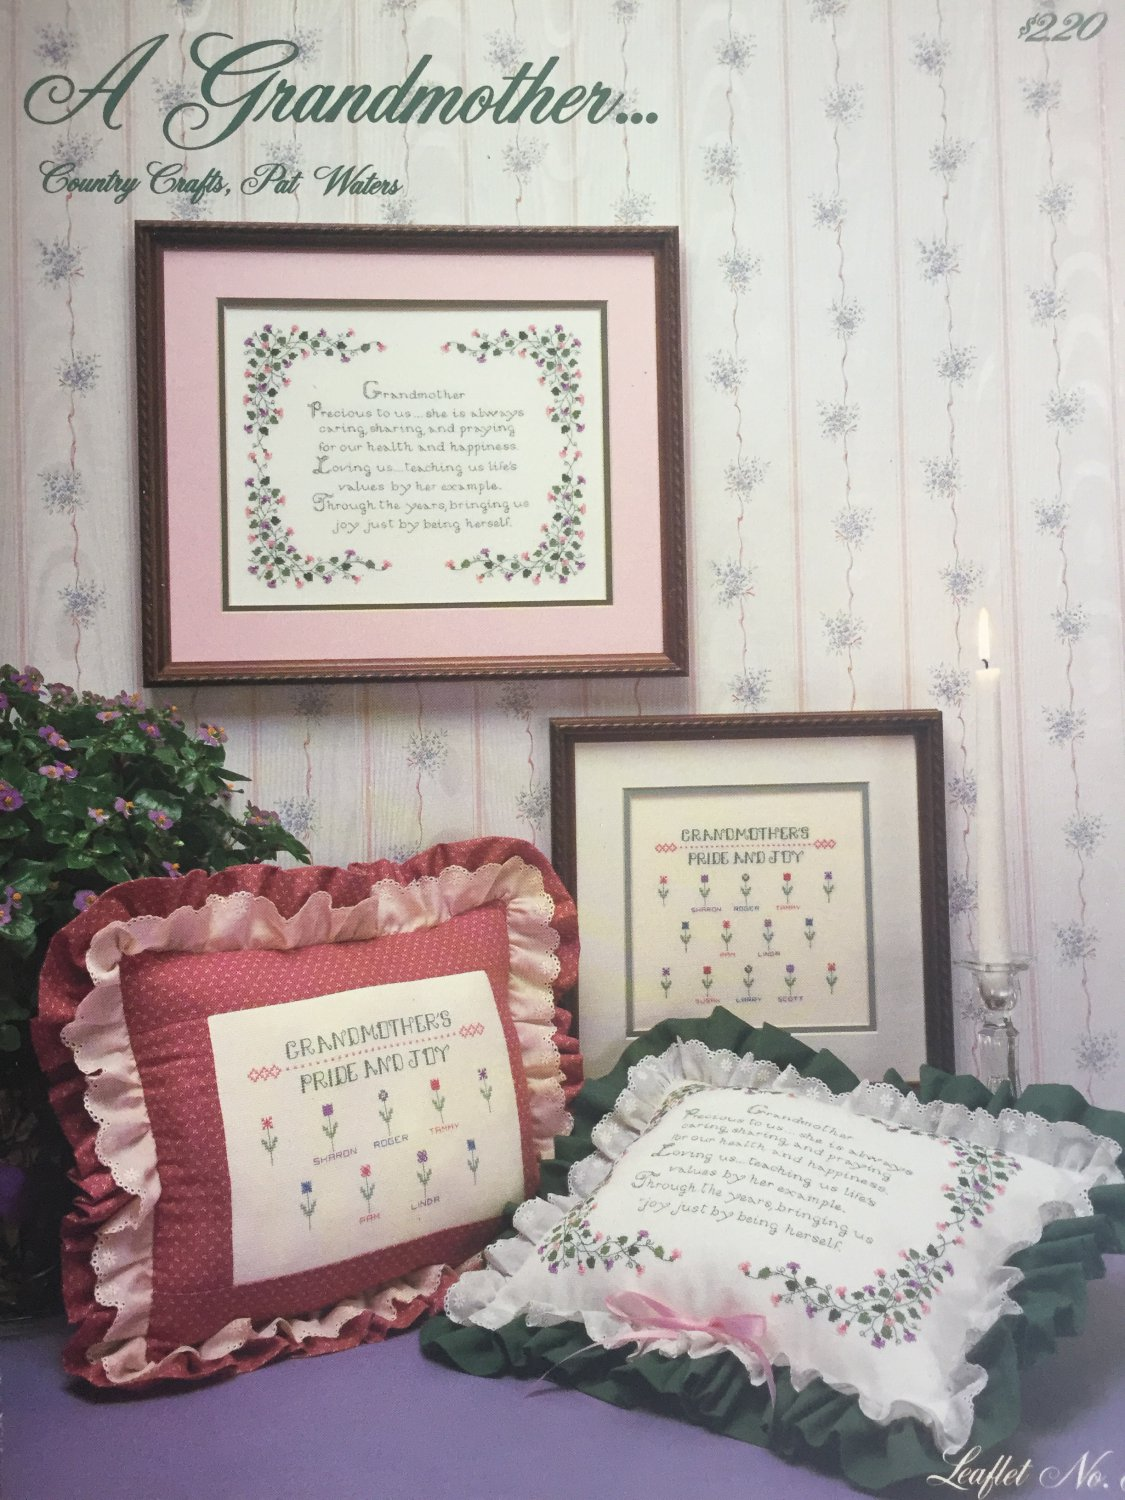 Grandmother Tribute Sampler Cross Stitch Chart by Pat Waters Country Crafts